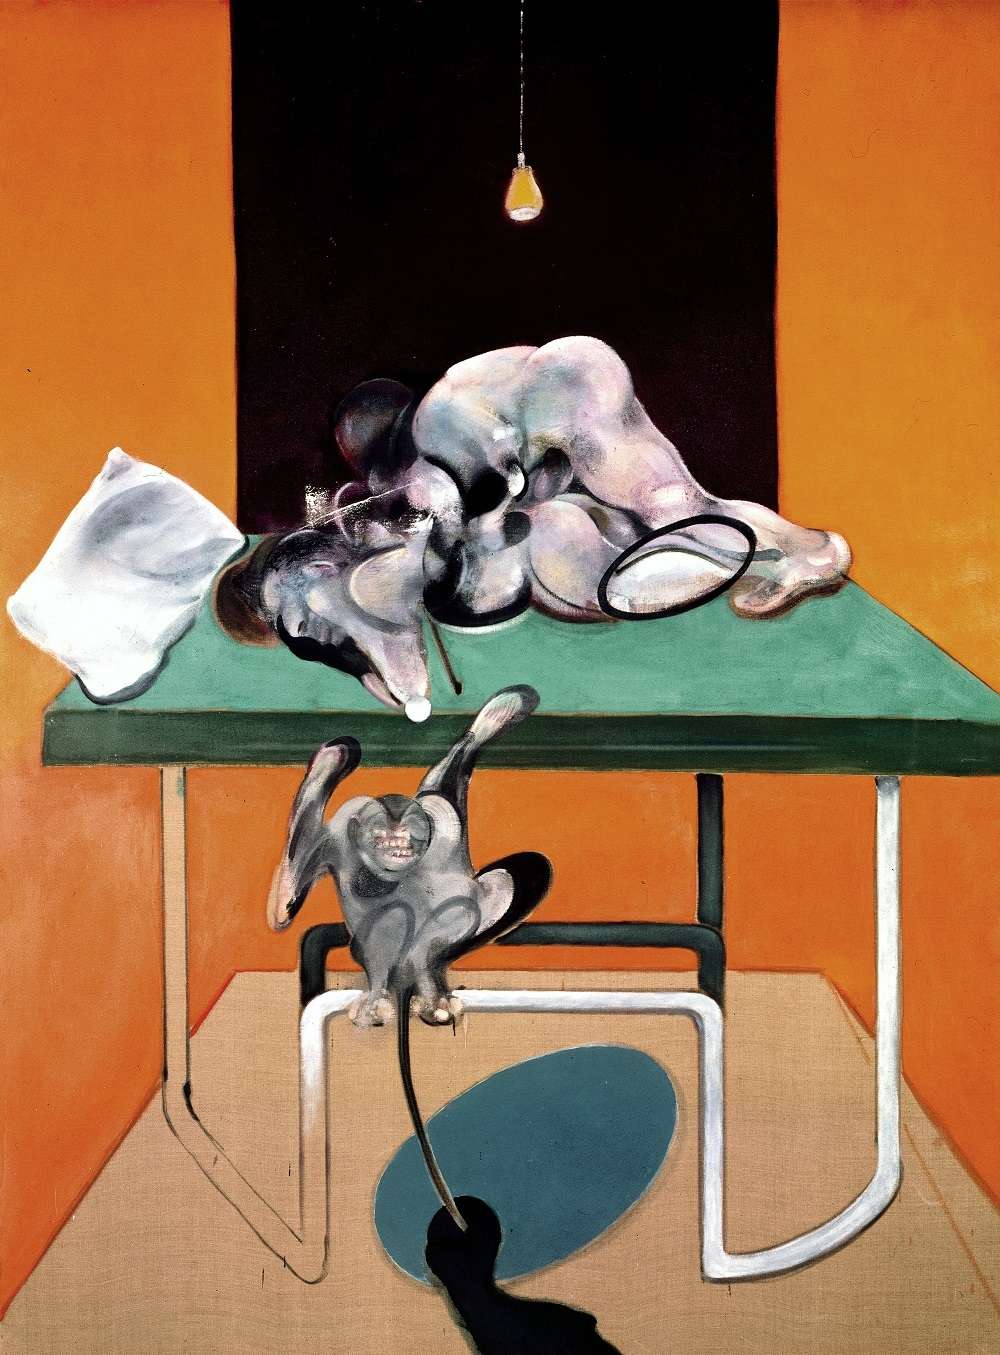 Francis Bacon Two Figures with a Monkey​, 1973 Oil on canvas 78 x 58 1/8 in 198 x 147.5 cm © The Estate of Francis Bacon. All rights reserved, DACS/Artimage 2019 Photo: Prudence Cuming Associates Ltd Courtesy Gagosian